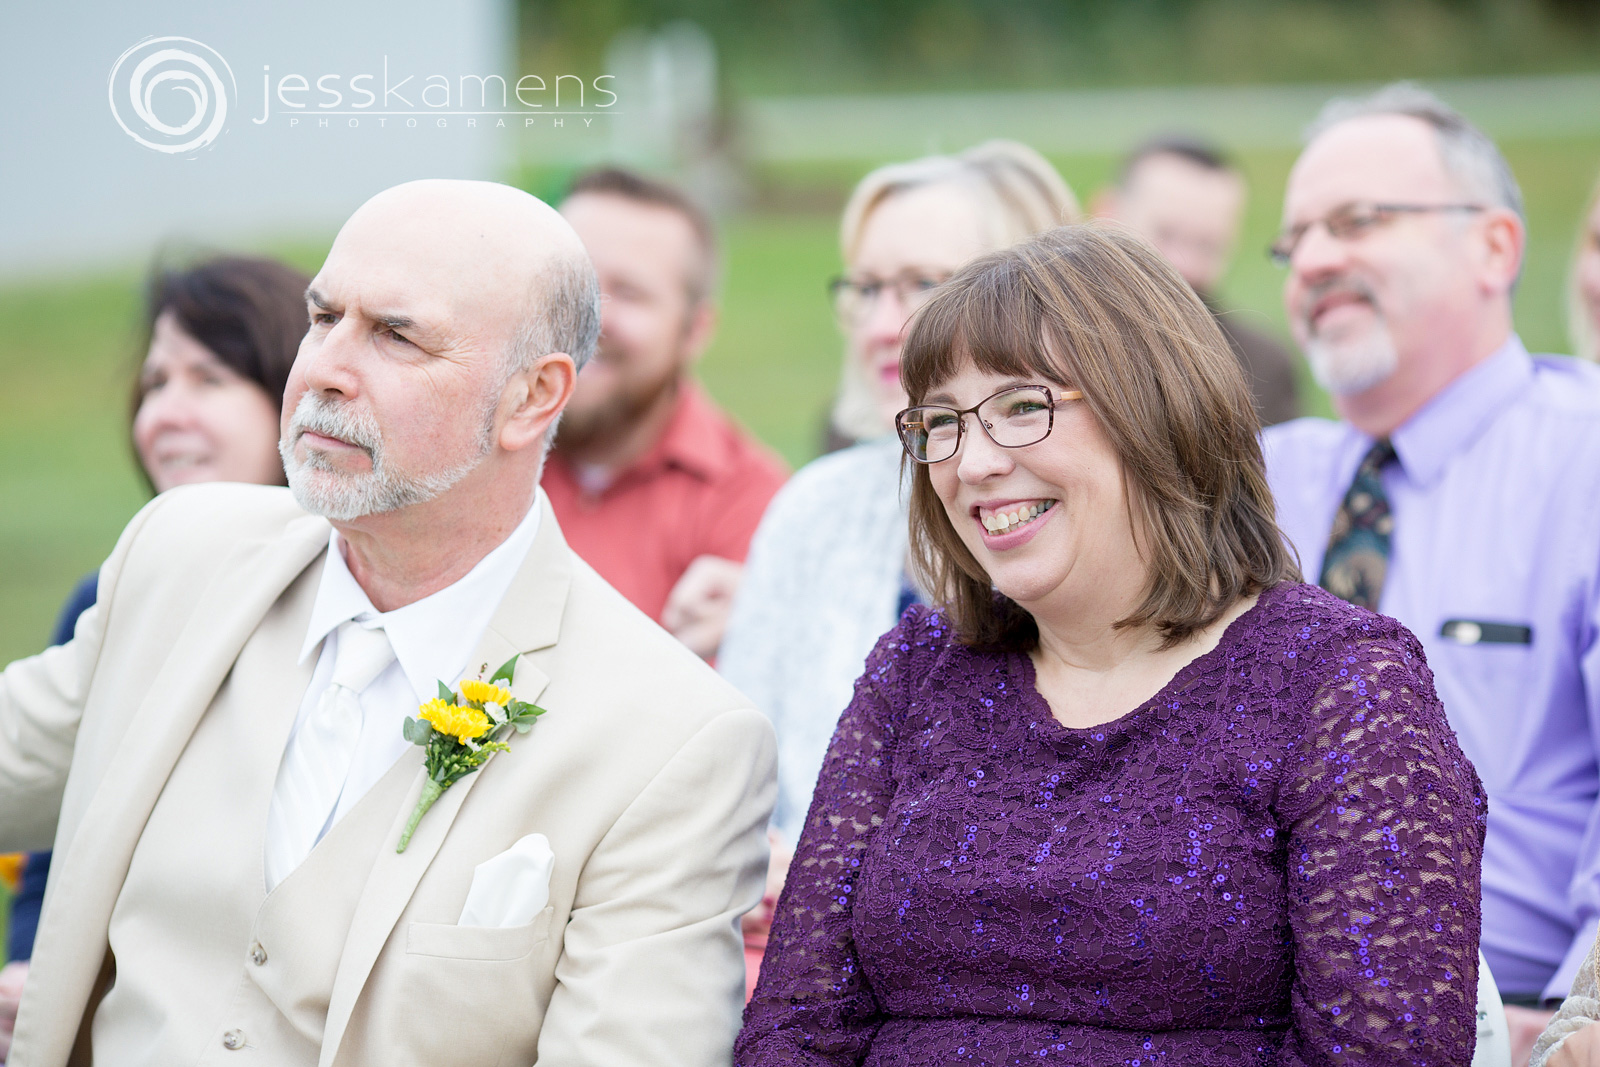 parents of the new husband and wife laugh during a joke in a wedding ceremony